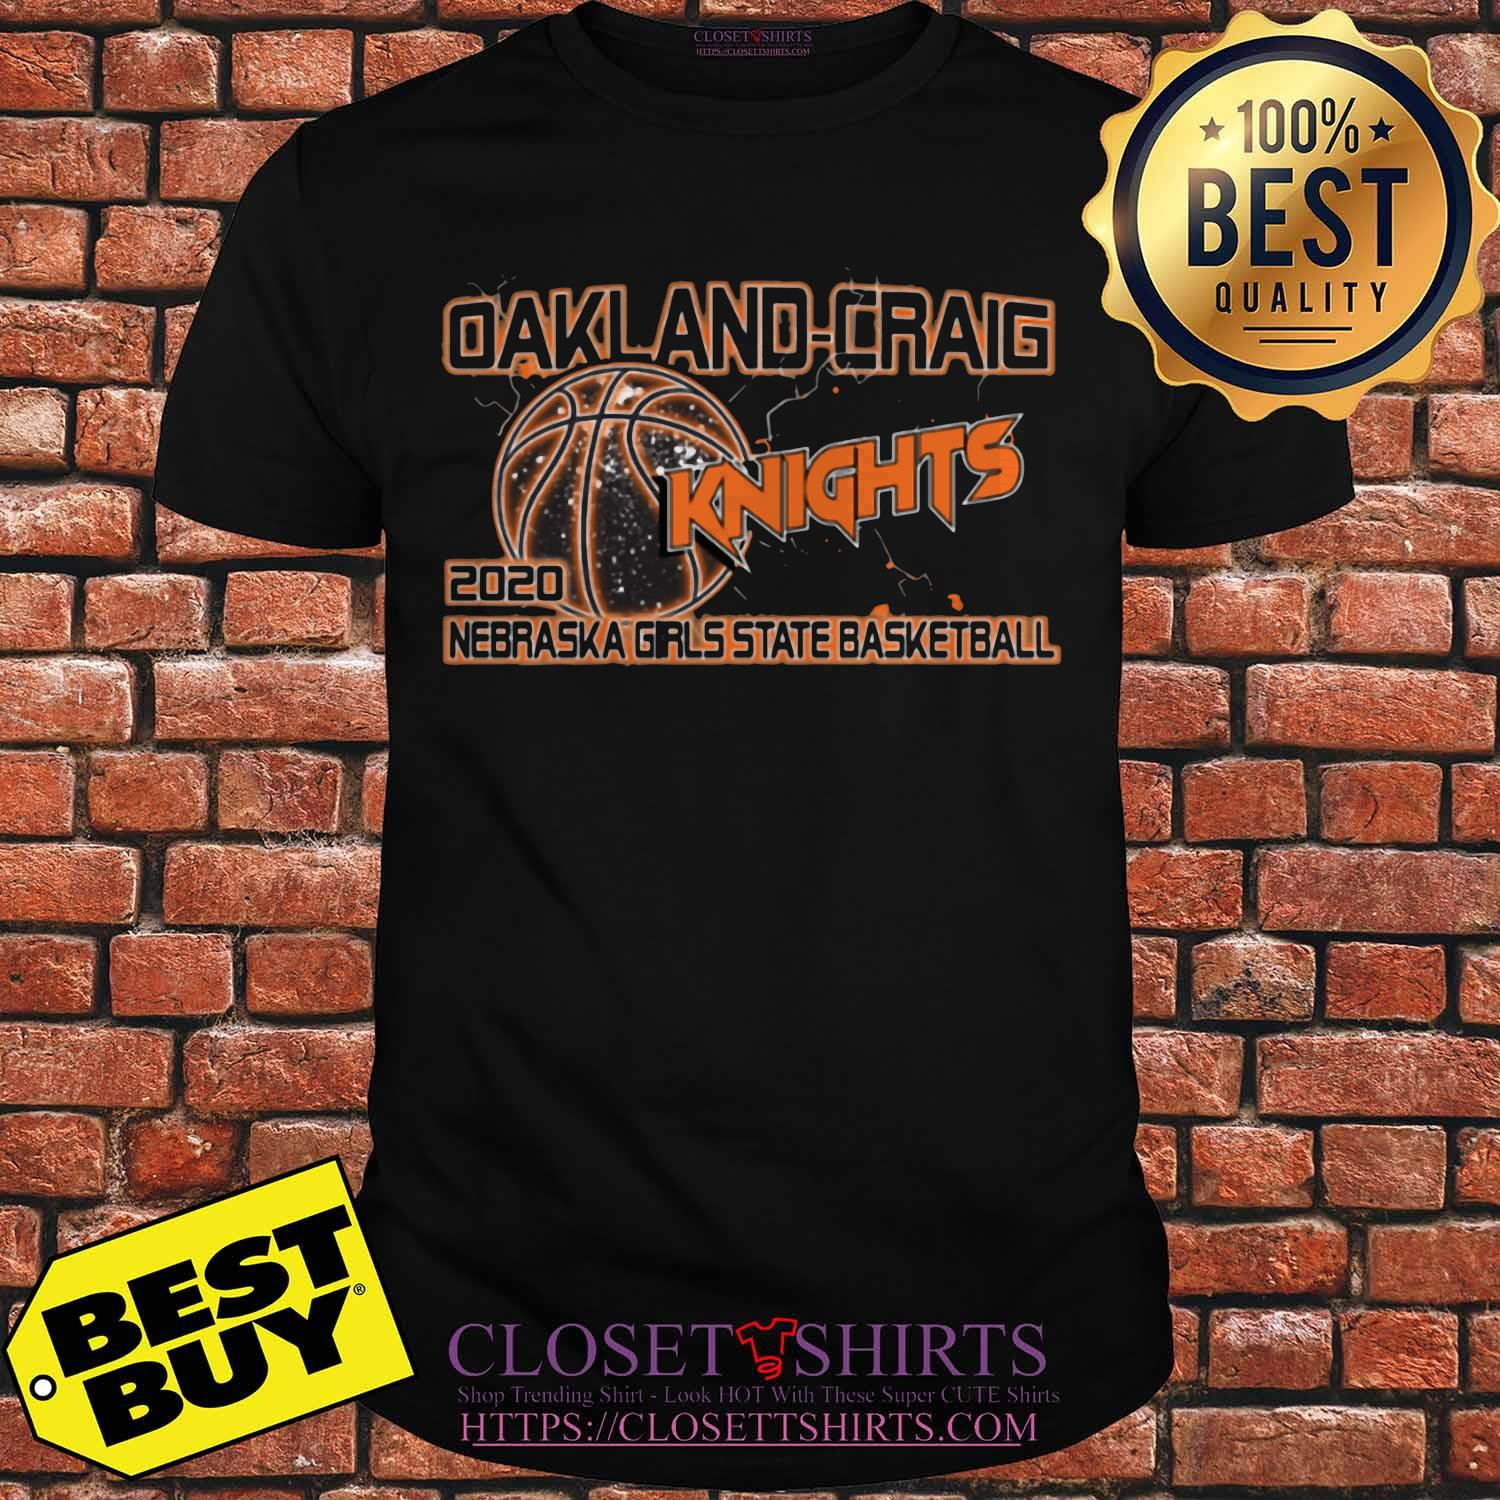 Oakland Craig Knight 2020 Nebraska Girls State Basketball Shirt